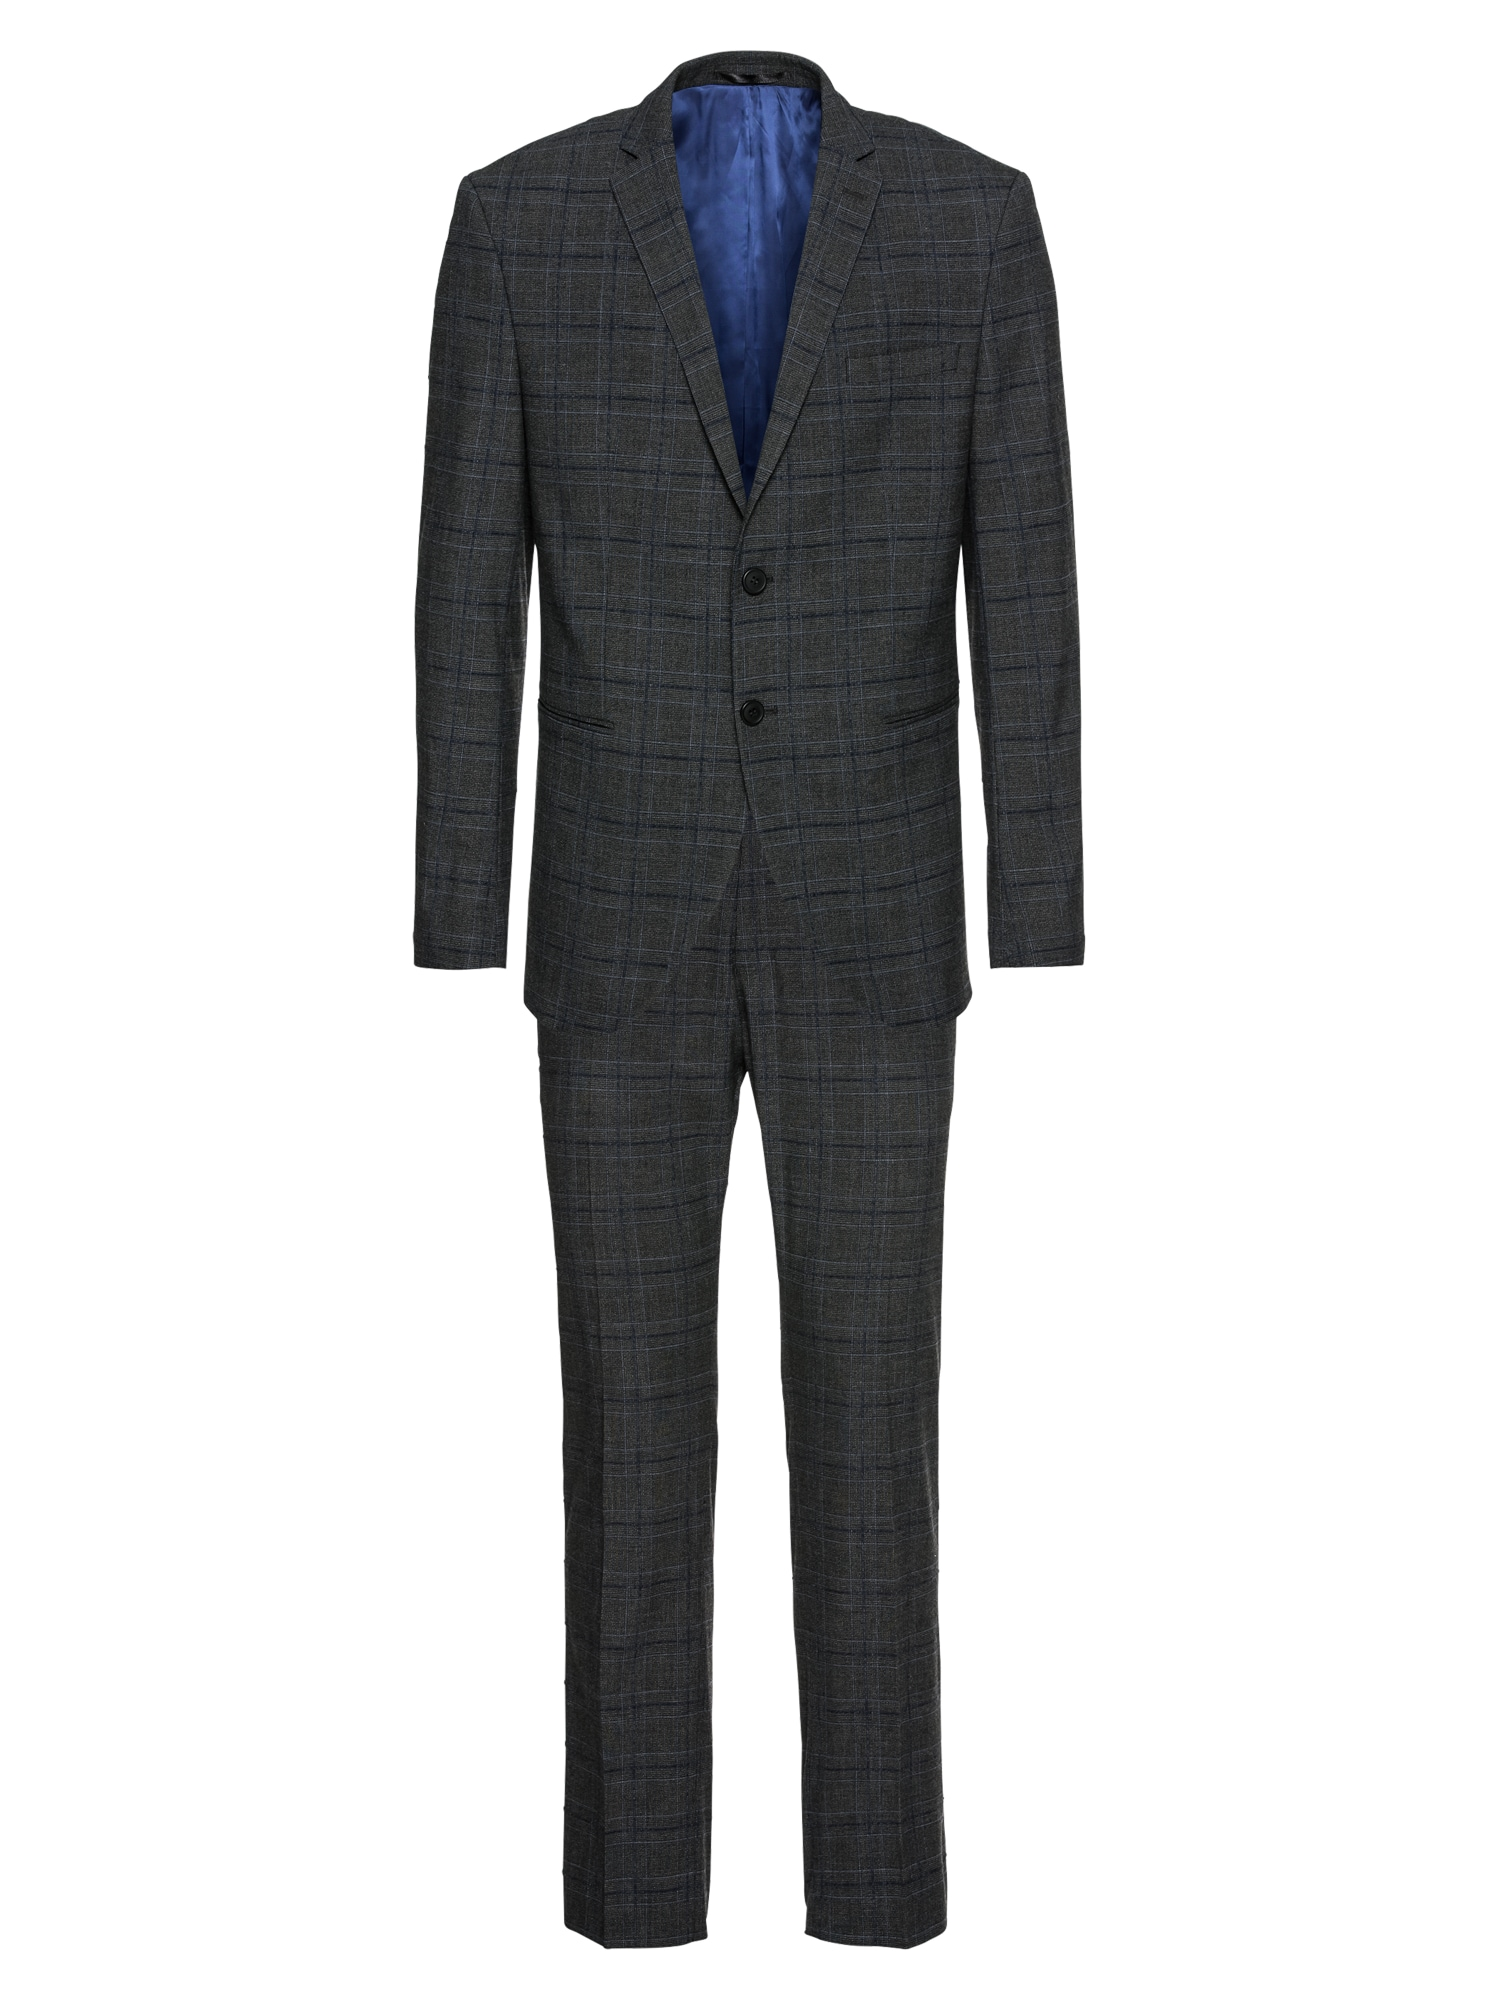 Oblek SLHSLIM-CELLOGAN GREY CHECK SUIT B šedá SELECTED HOMME